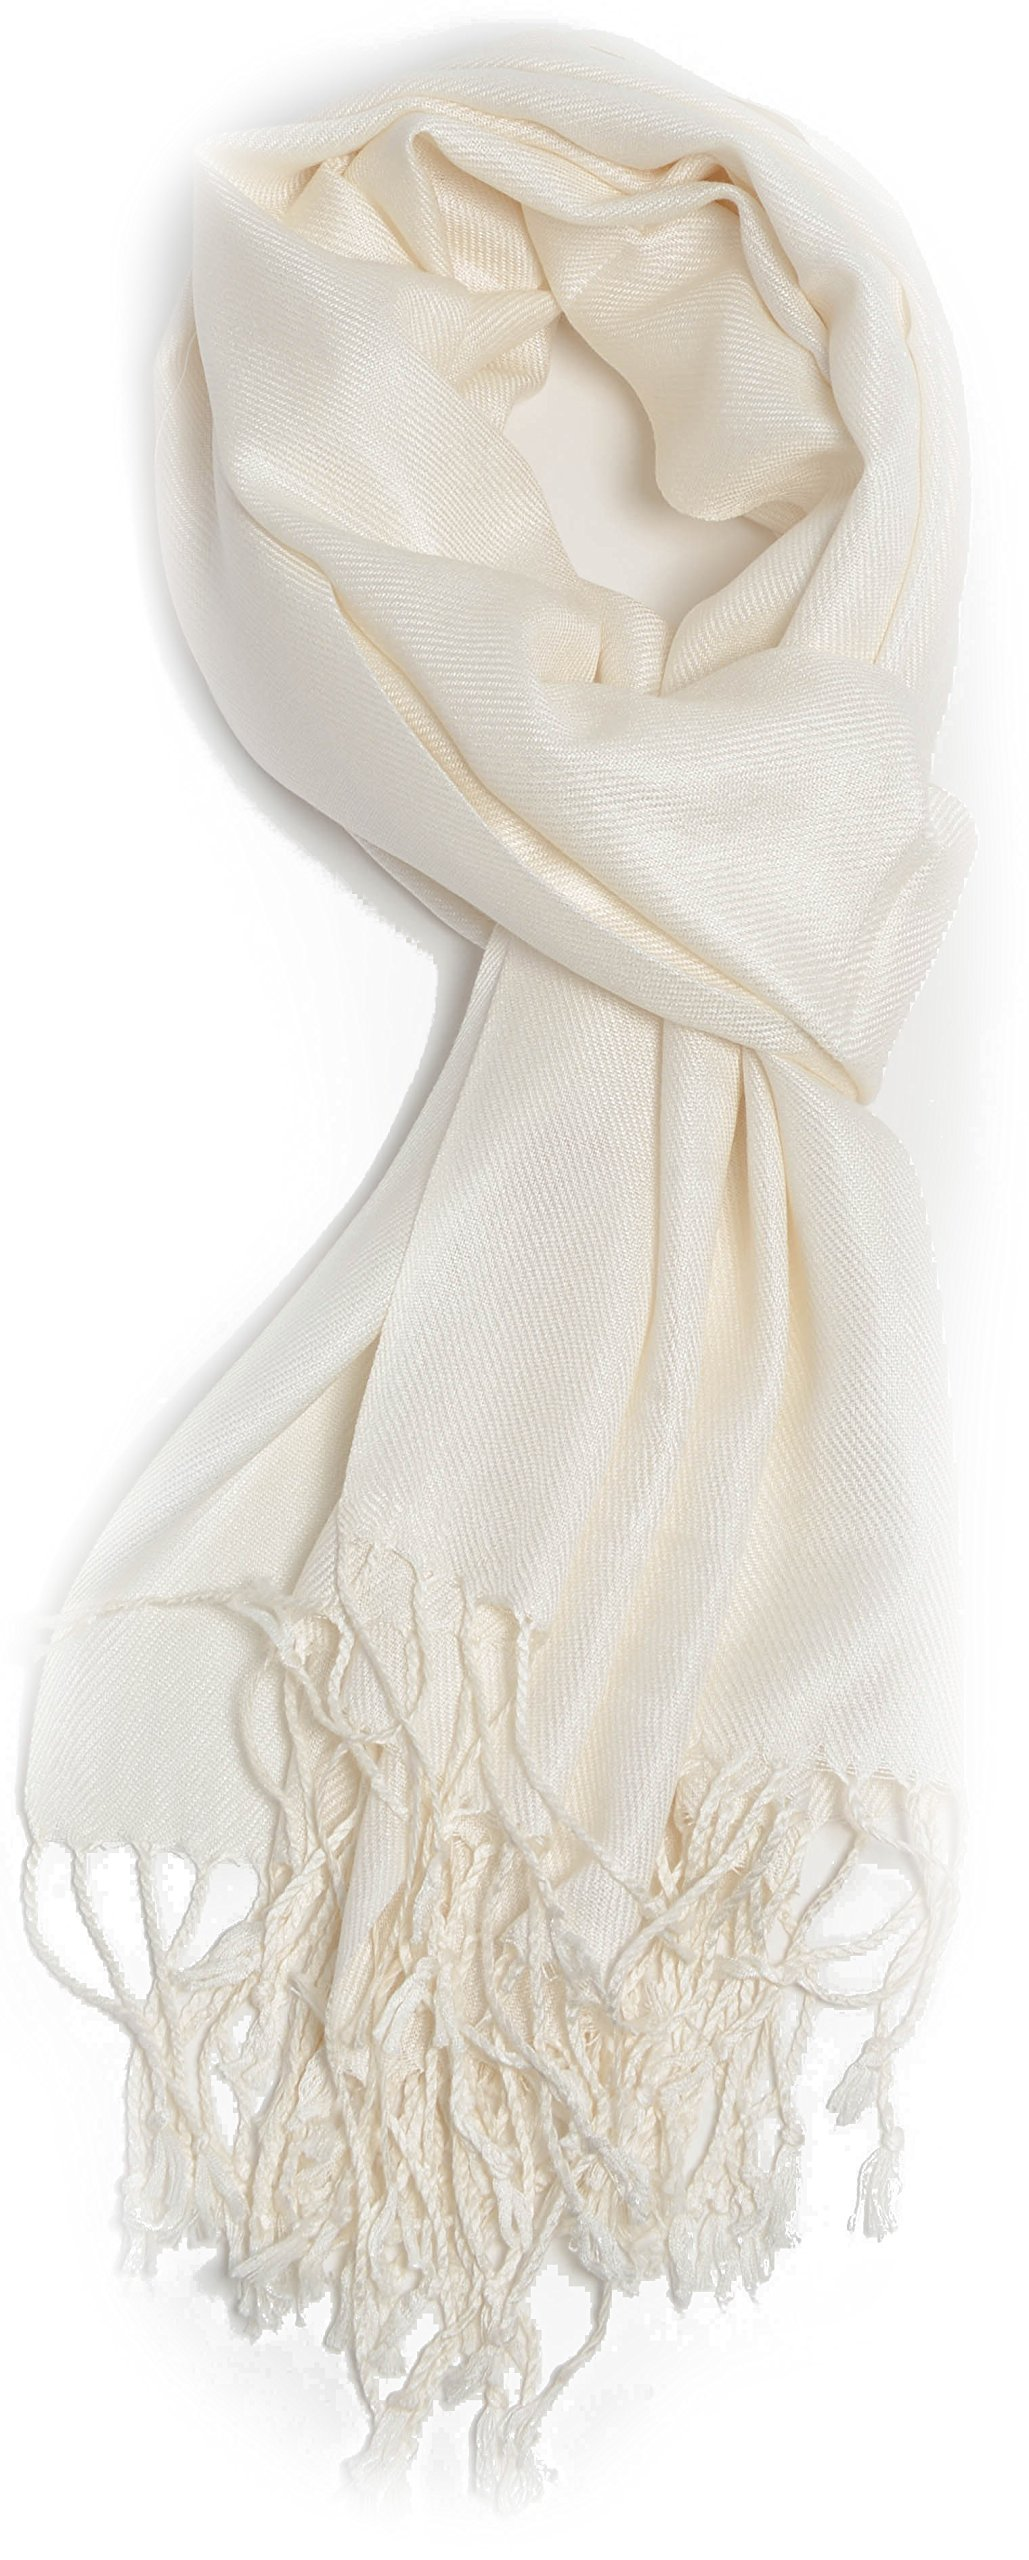 Large Soft Silky Pashmina Shawl Wrap Scarf in Solid Colors (Ivory)